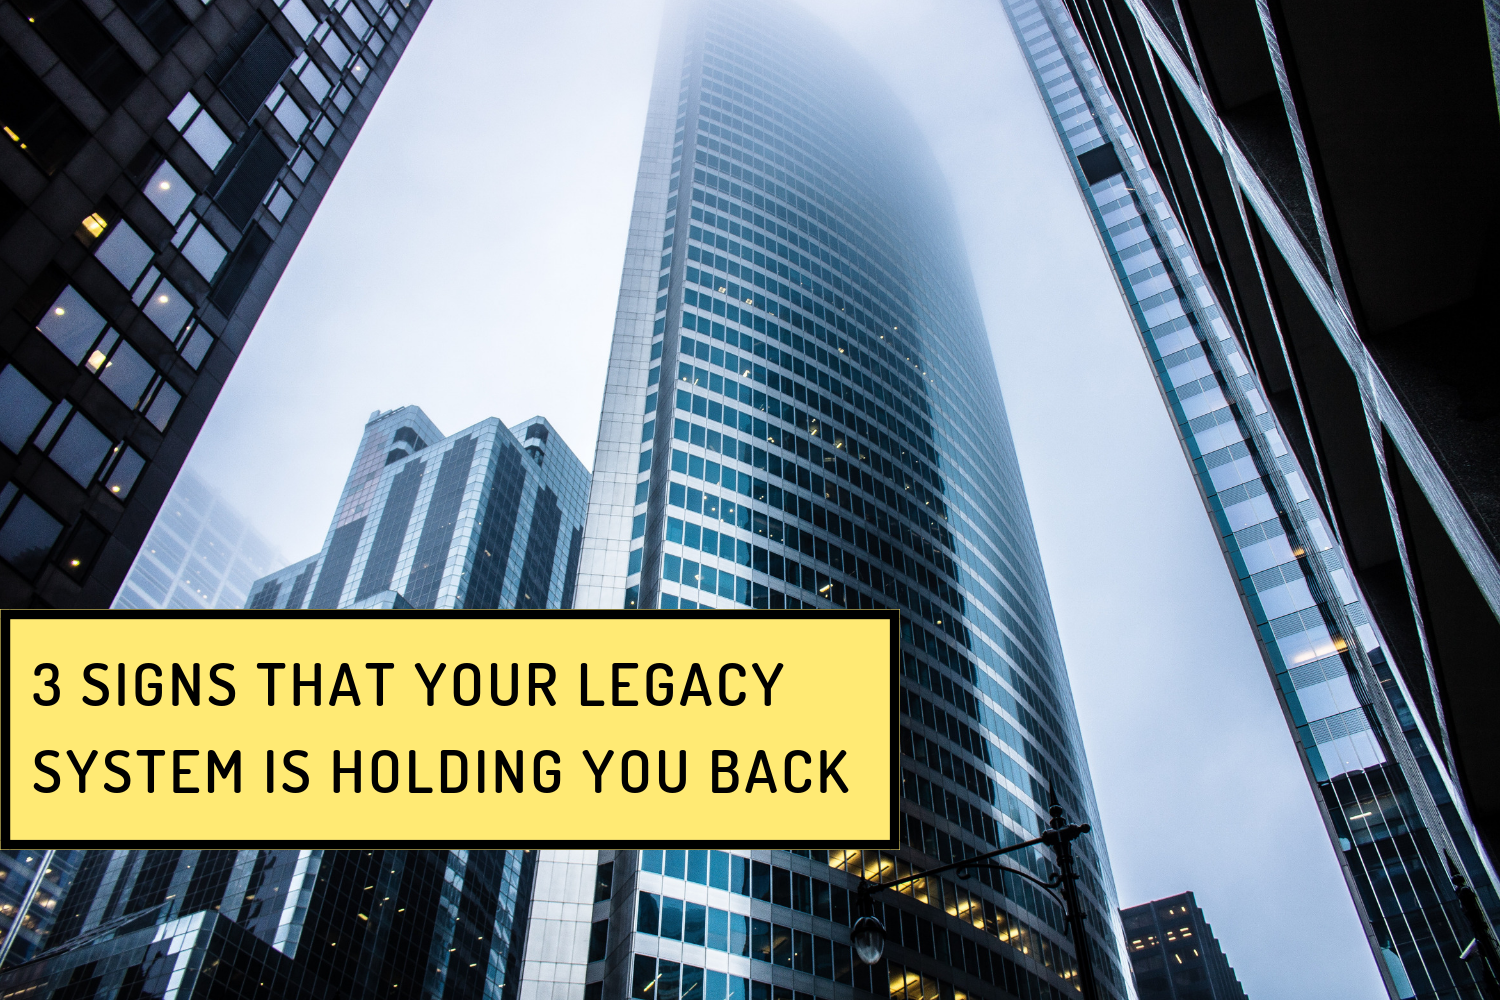 3 Signs That Your Legacy System Is Holding You Back